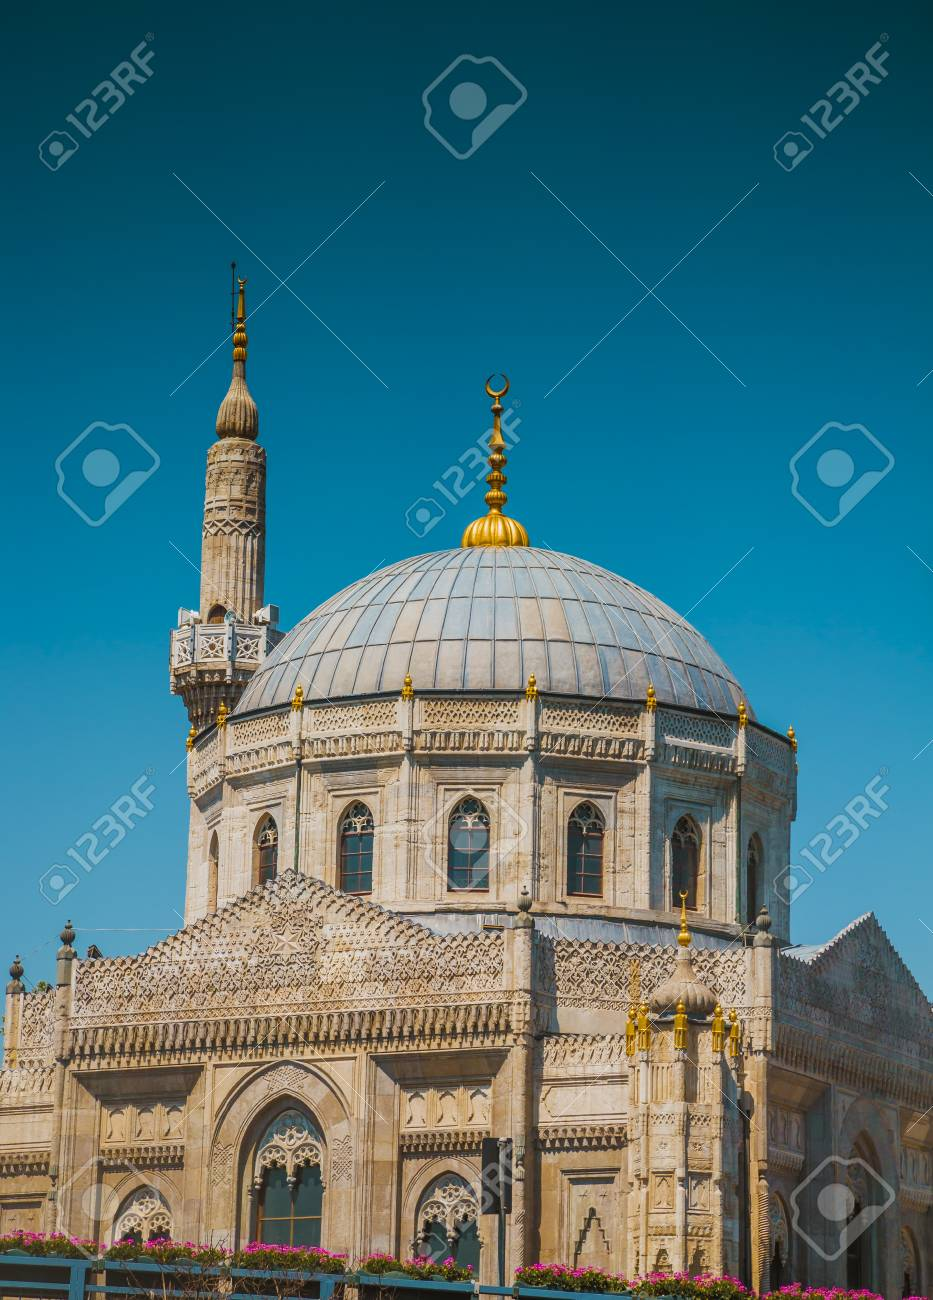 Ancient Ottoman Mosque In Turkey Made In 16th Century Stock Photo